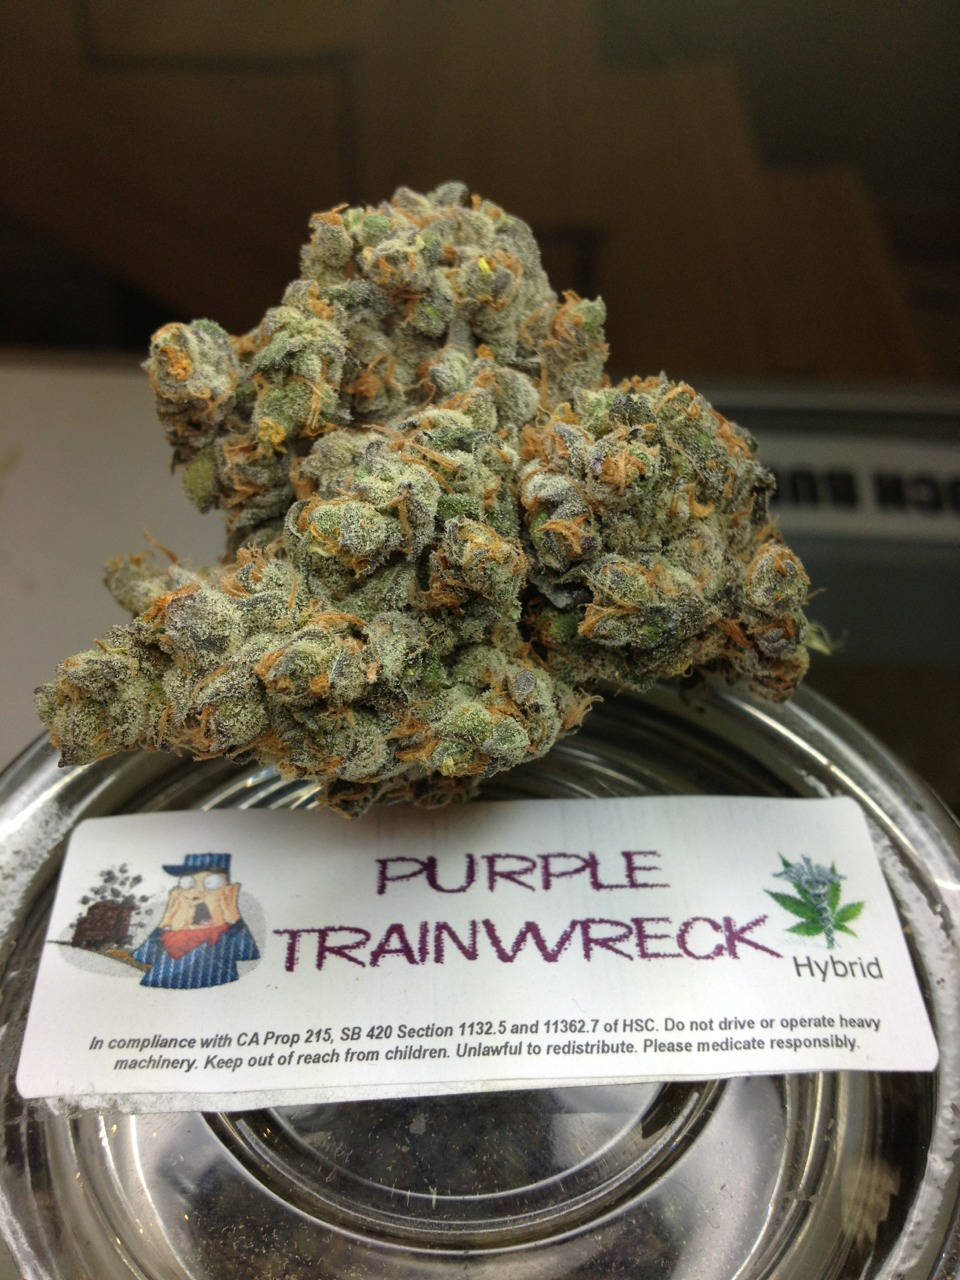 purple-trainwreck-cannabis